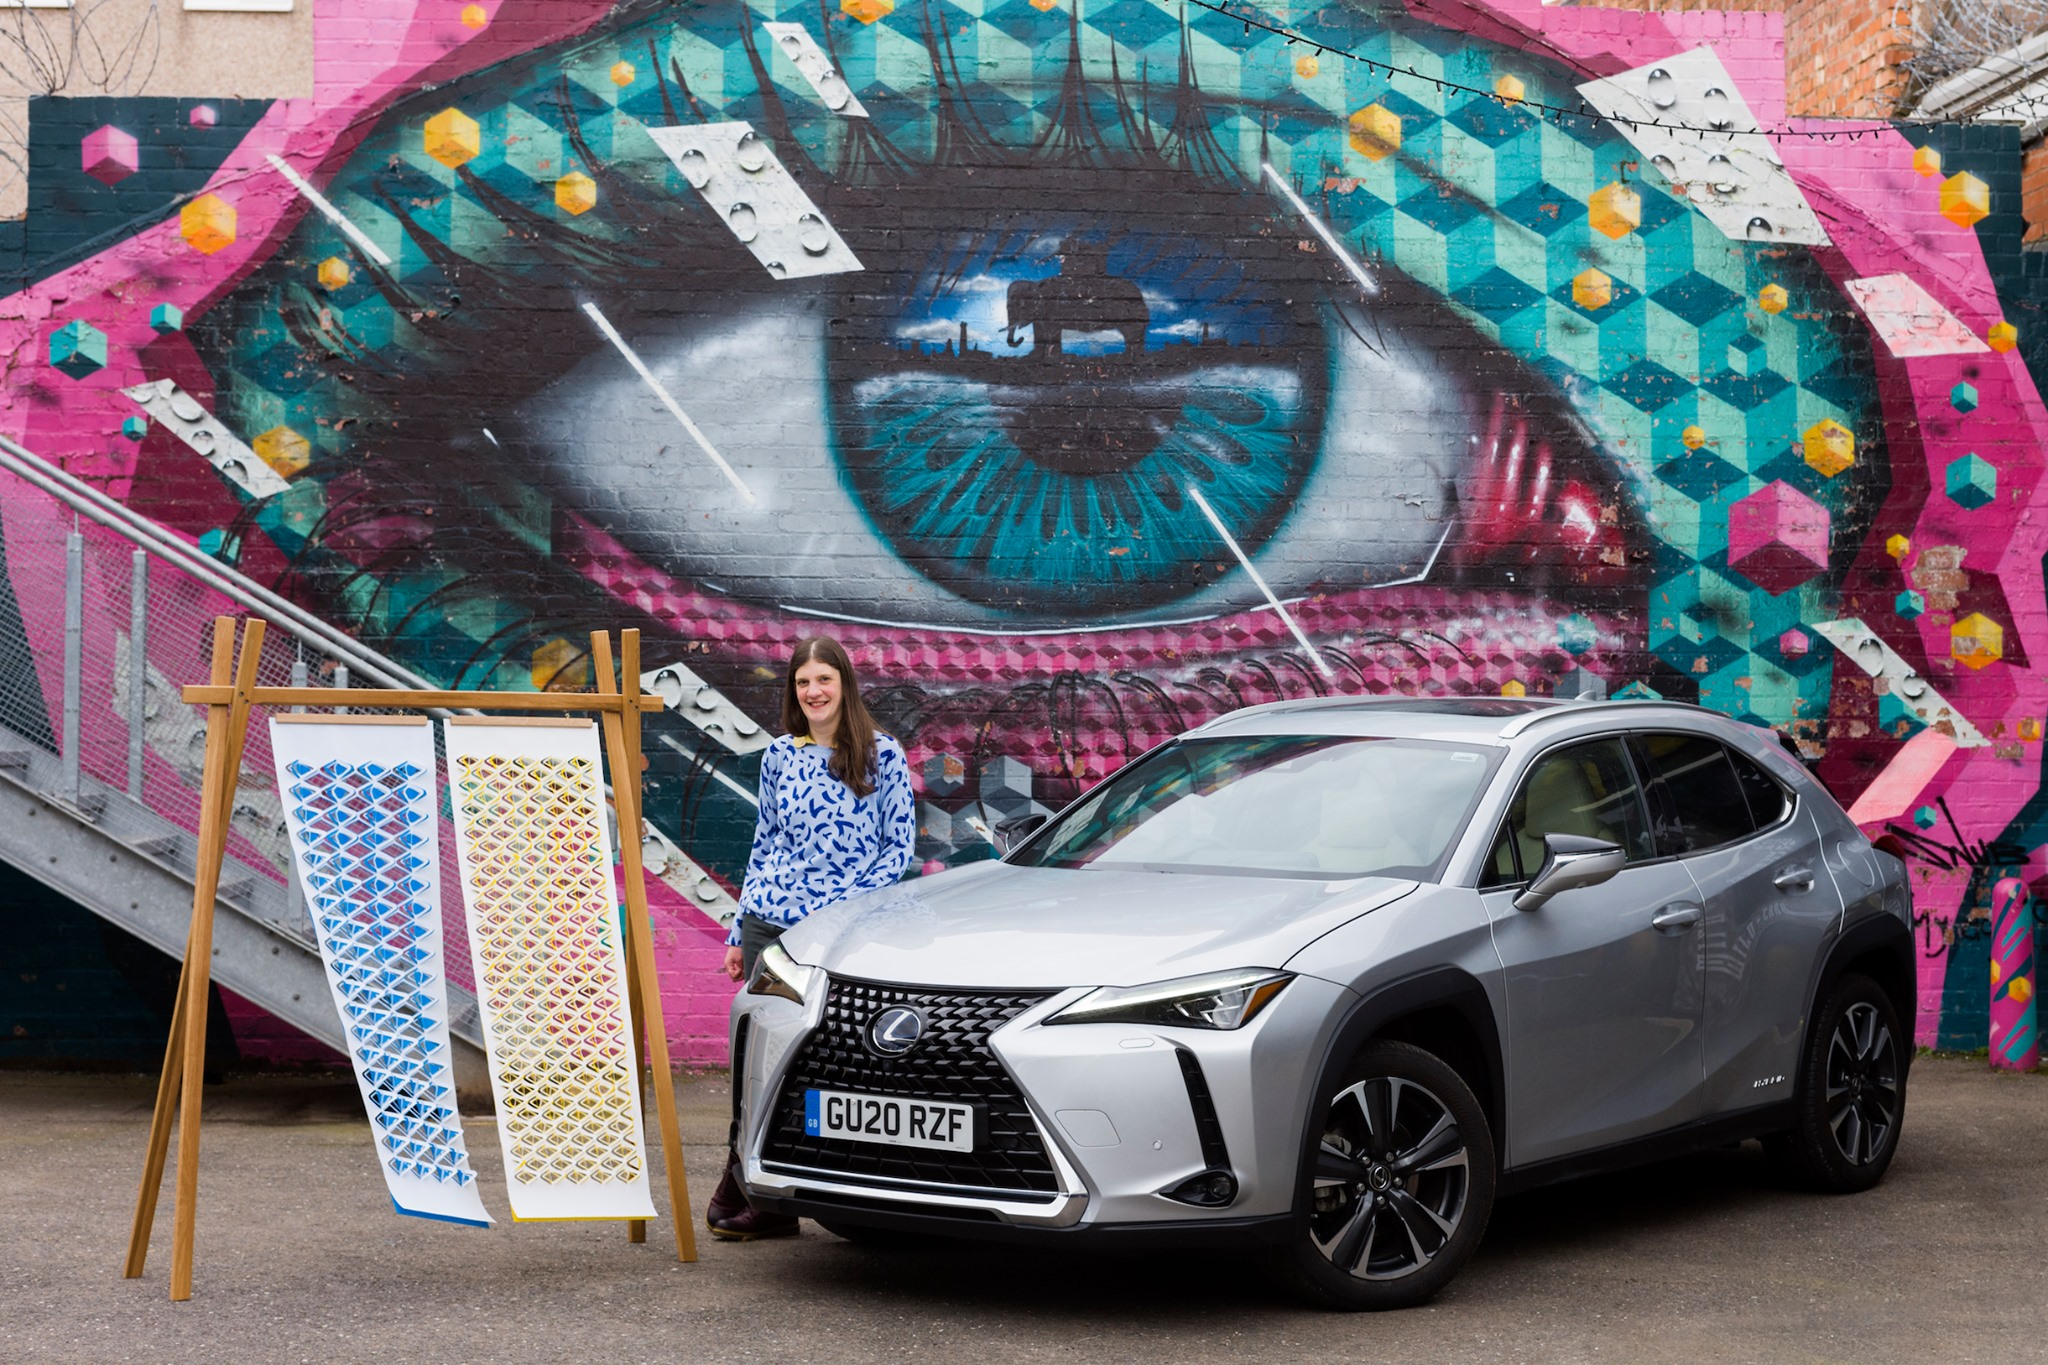 The offending Lexus campaign featuring unauthorised usage of a mural by My Dog Sighs and SNUB23